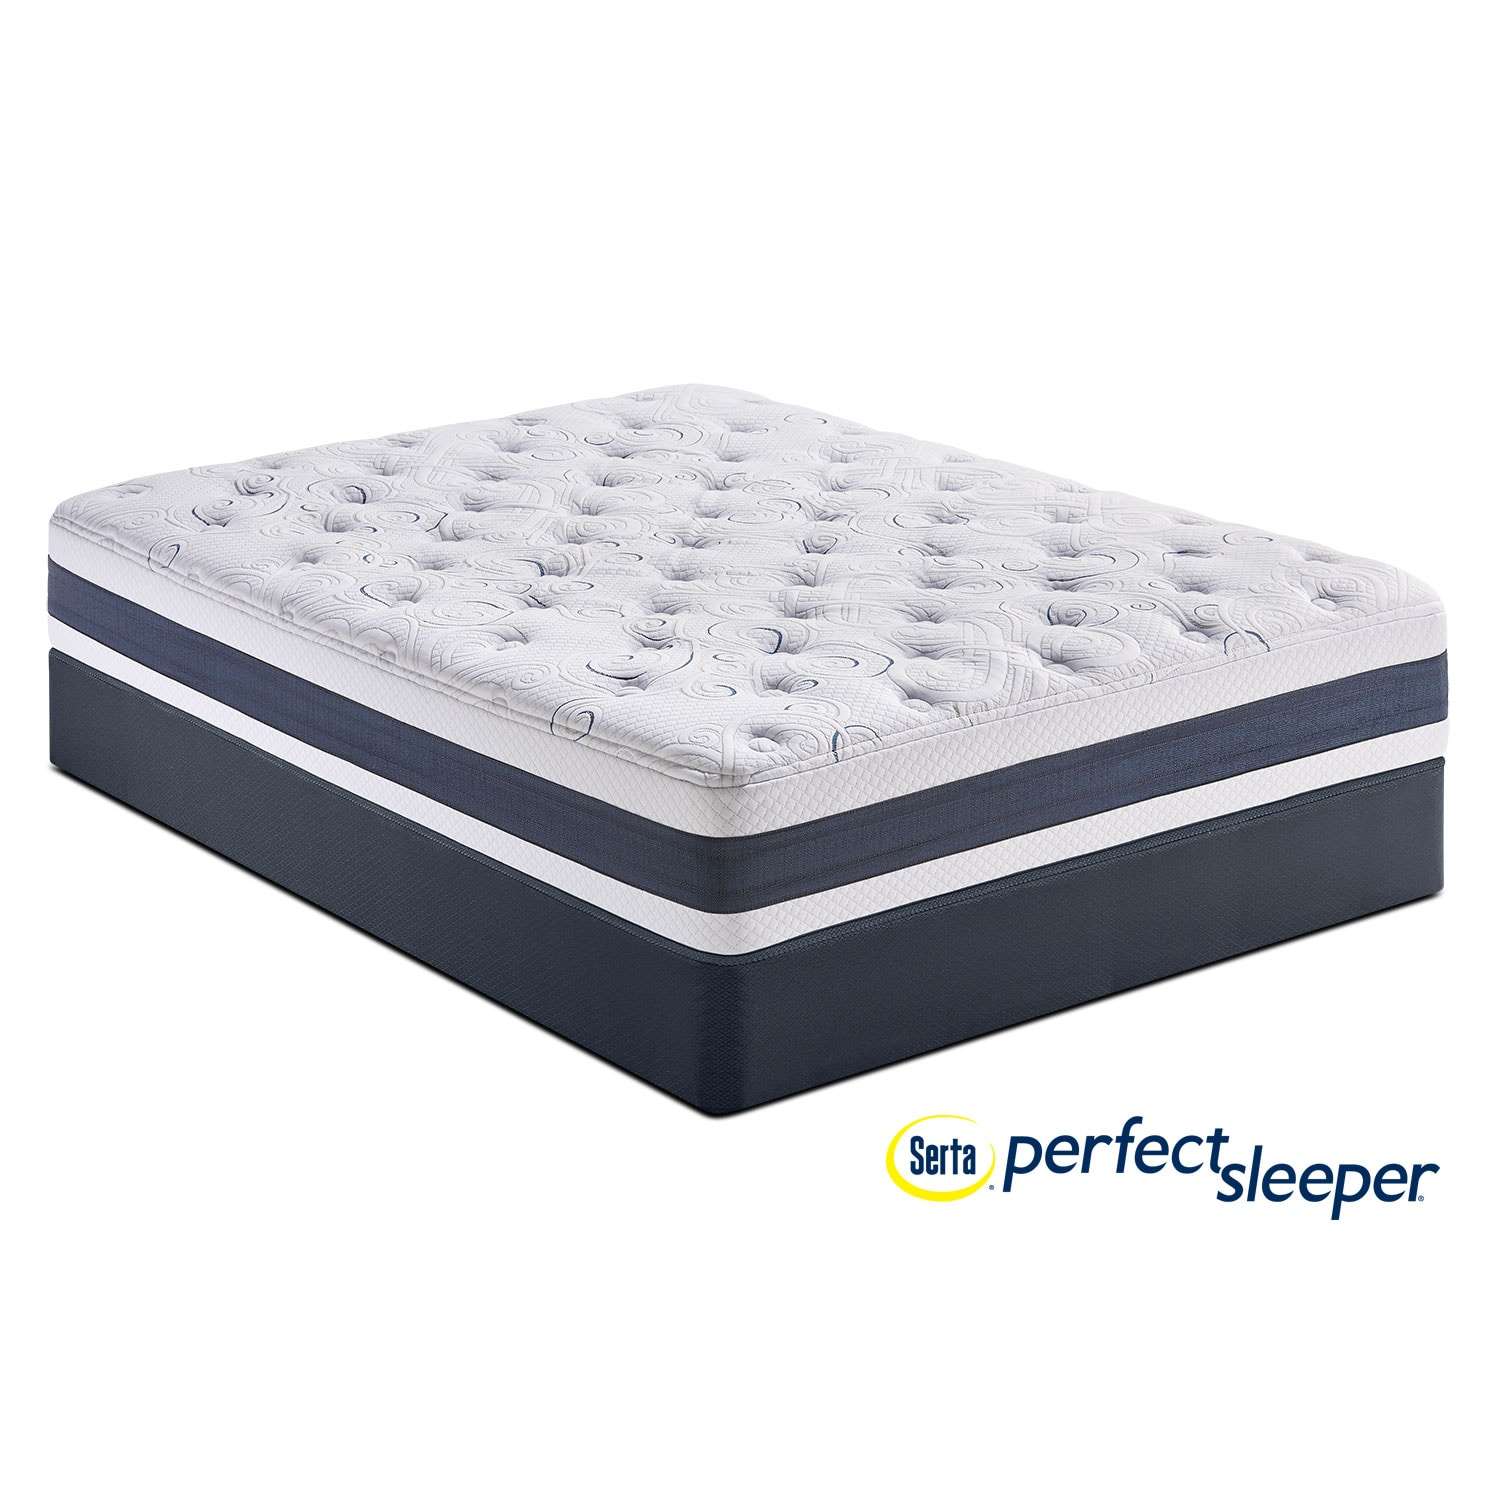 Plush Twin Mattress V1 Plush Twin Mattress Regal Posture Pillow Top Plush Twin Mattress Only